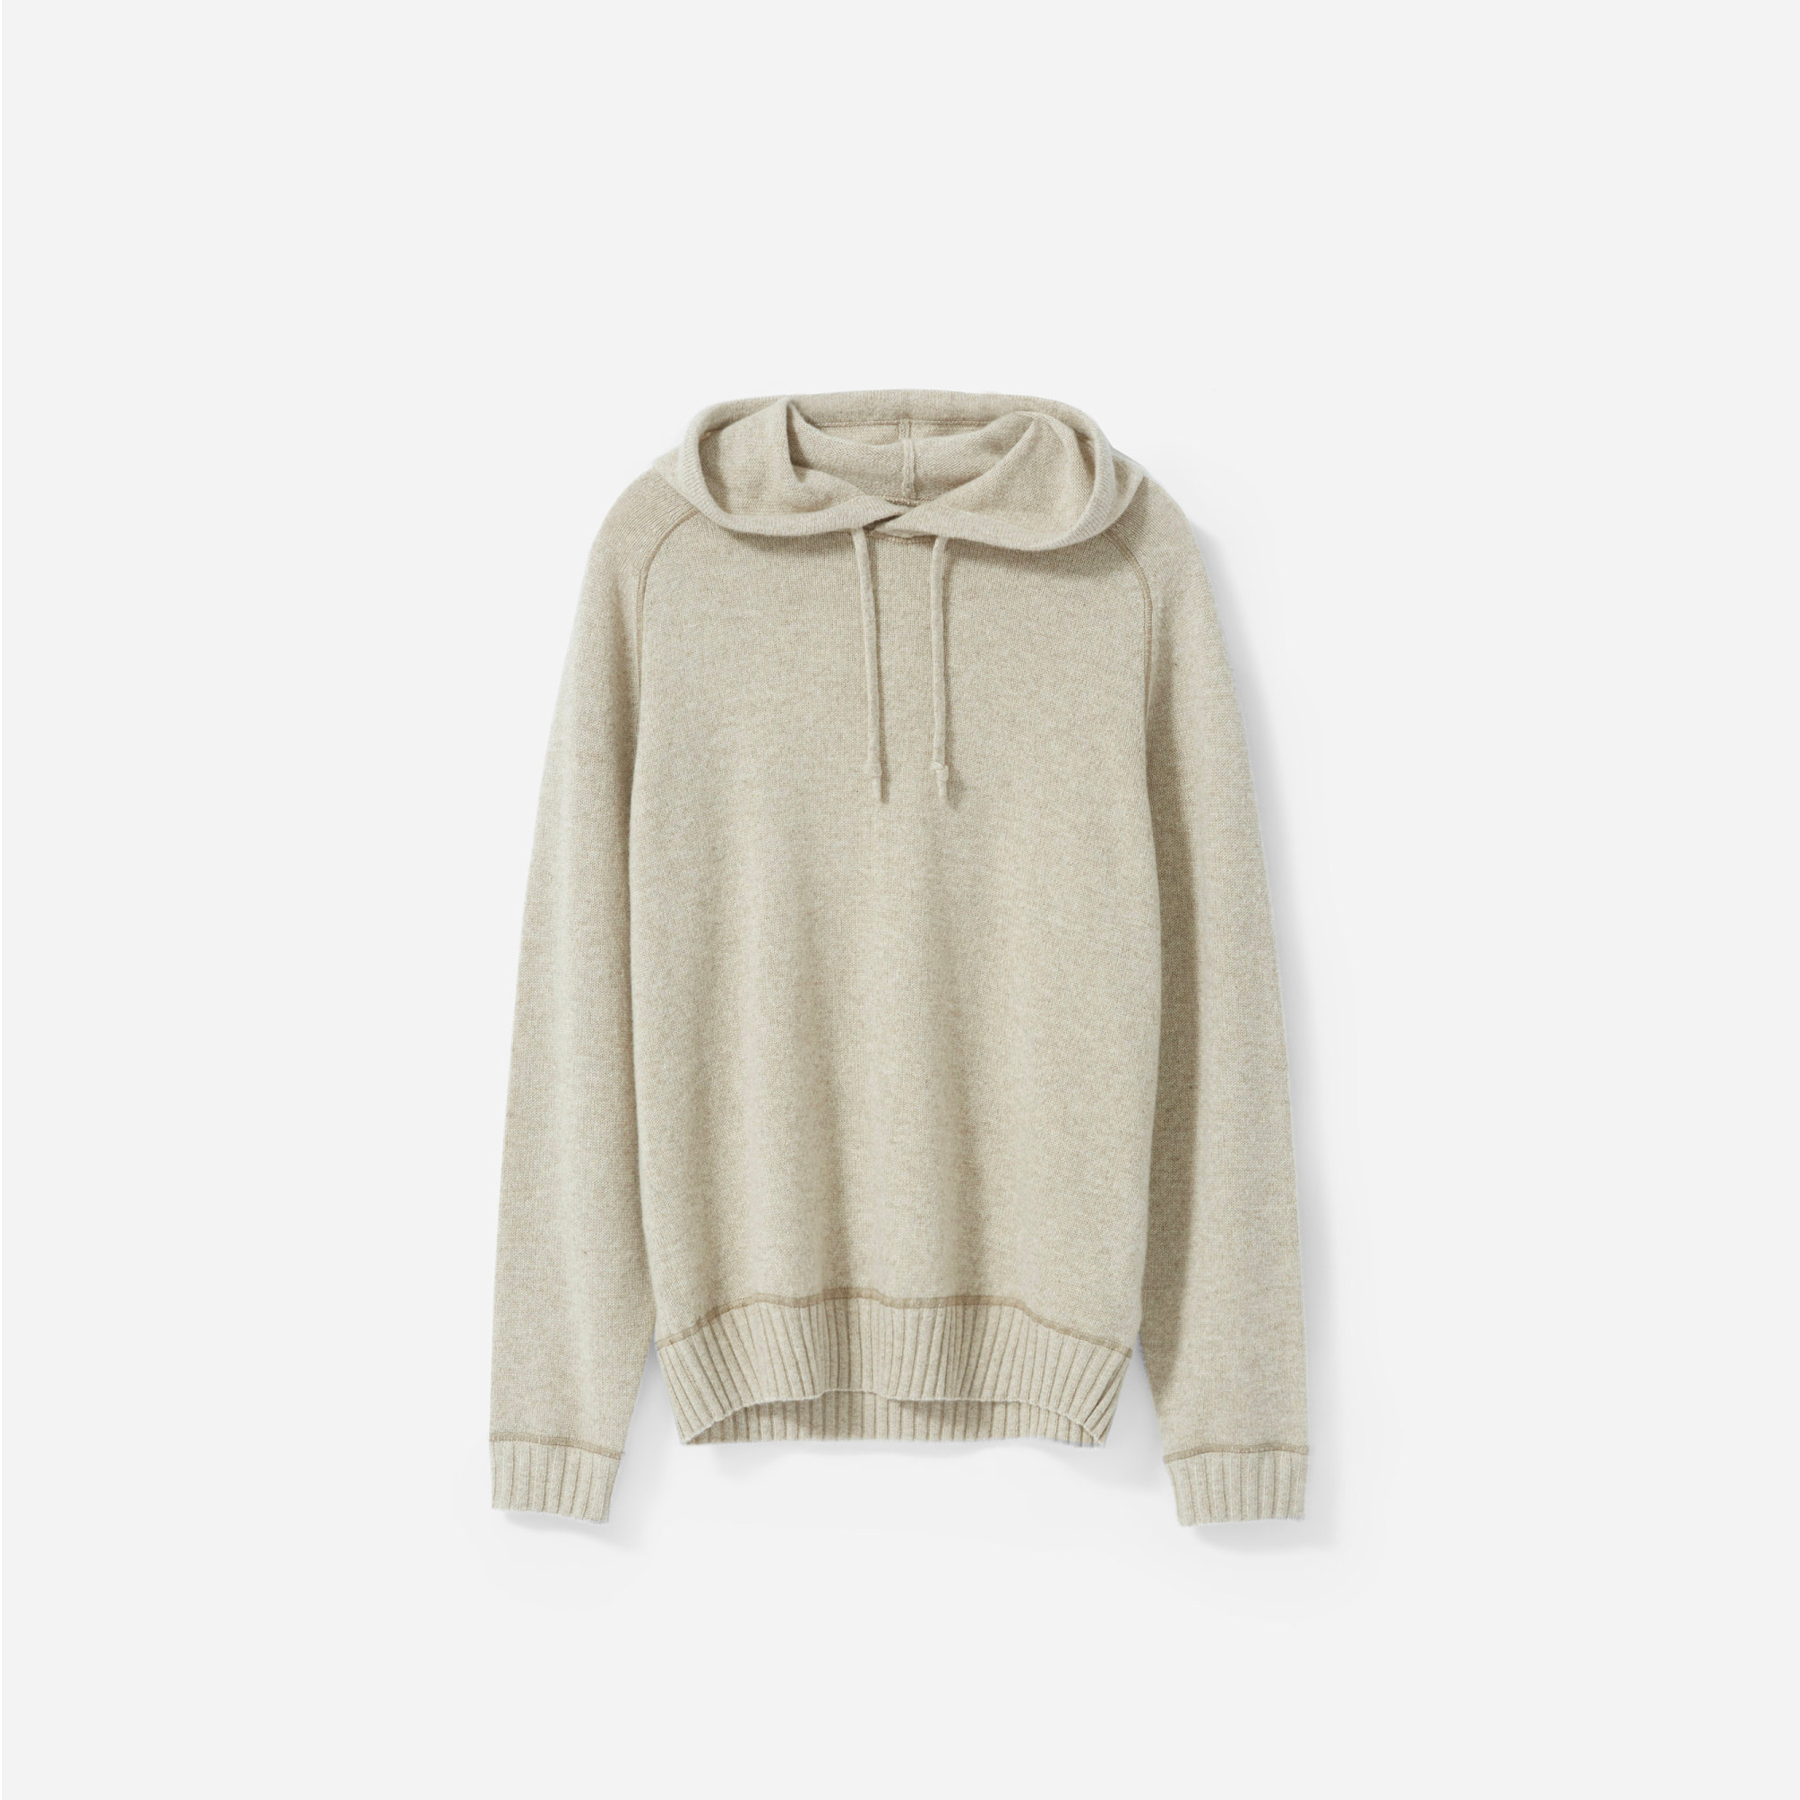 ALL-SORTS-OF-EVERLANE-CASHMERE-HOODIE